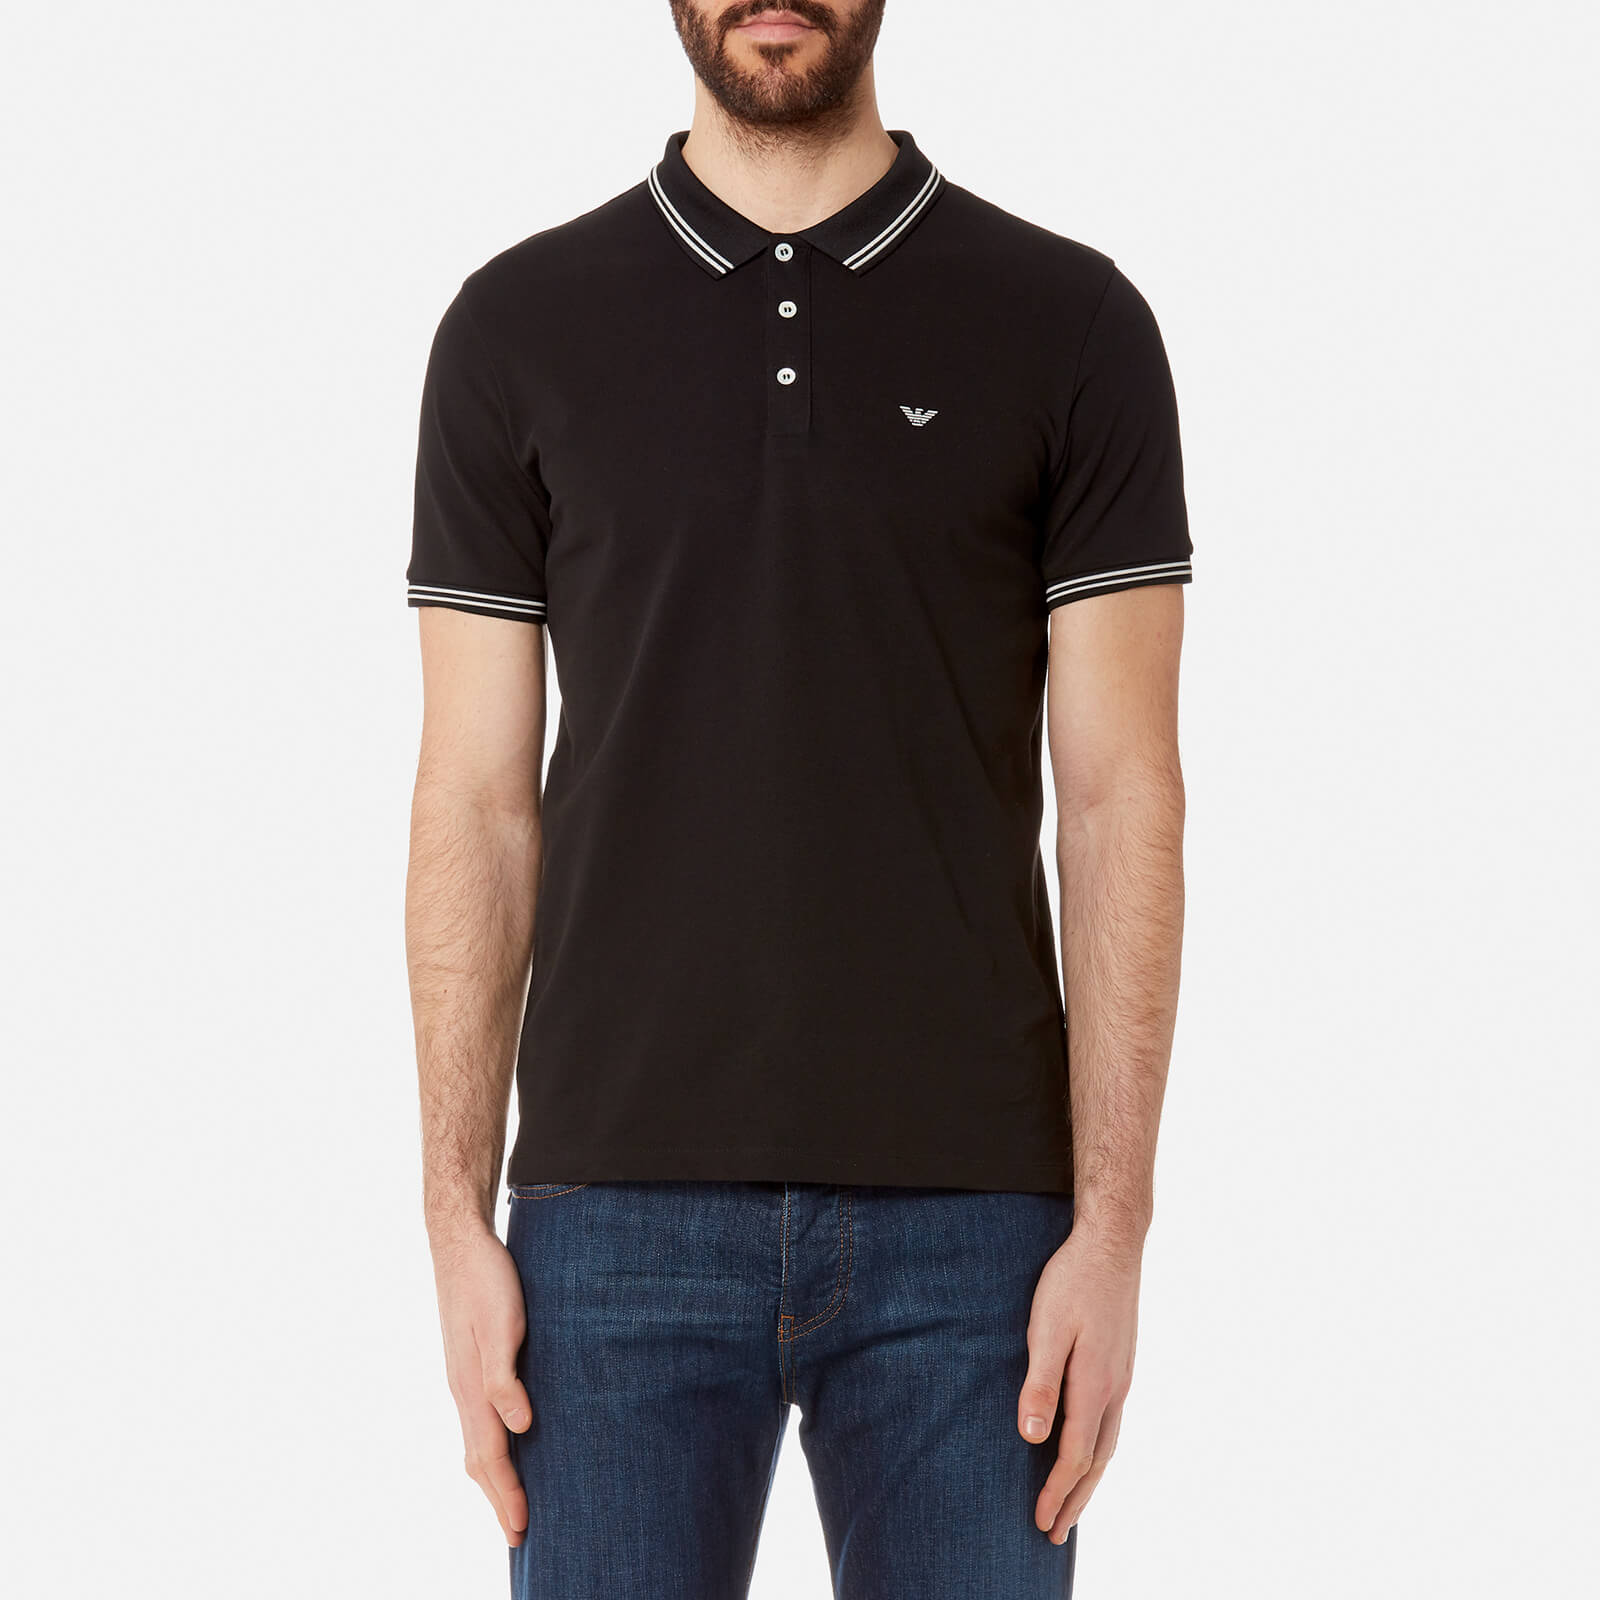 88b7e61844 Emporio Armani Men's Small Logo Polo Shirt - Nero